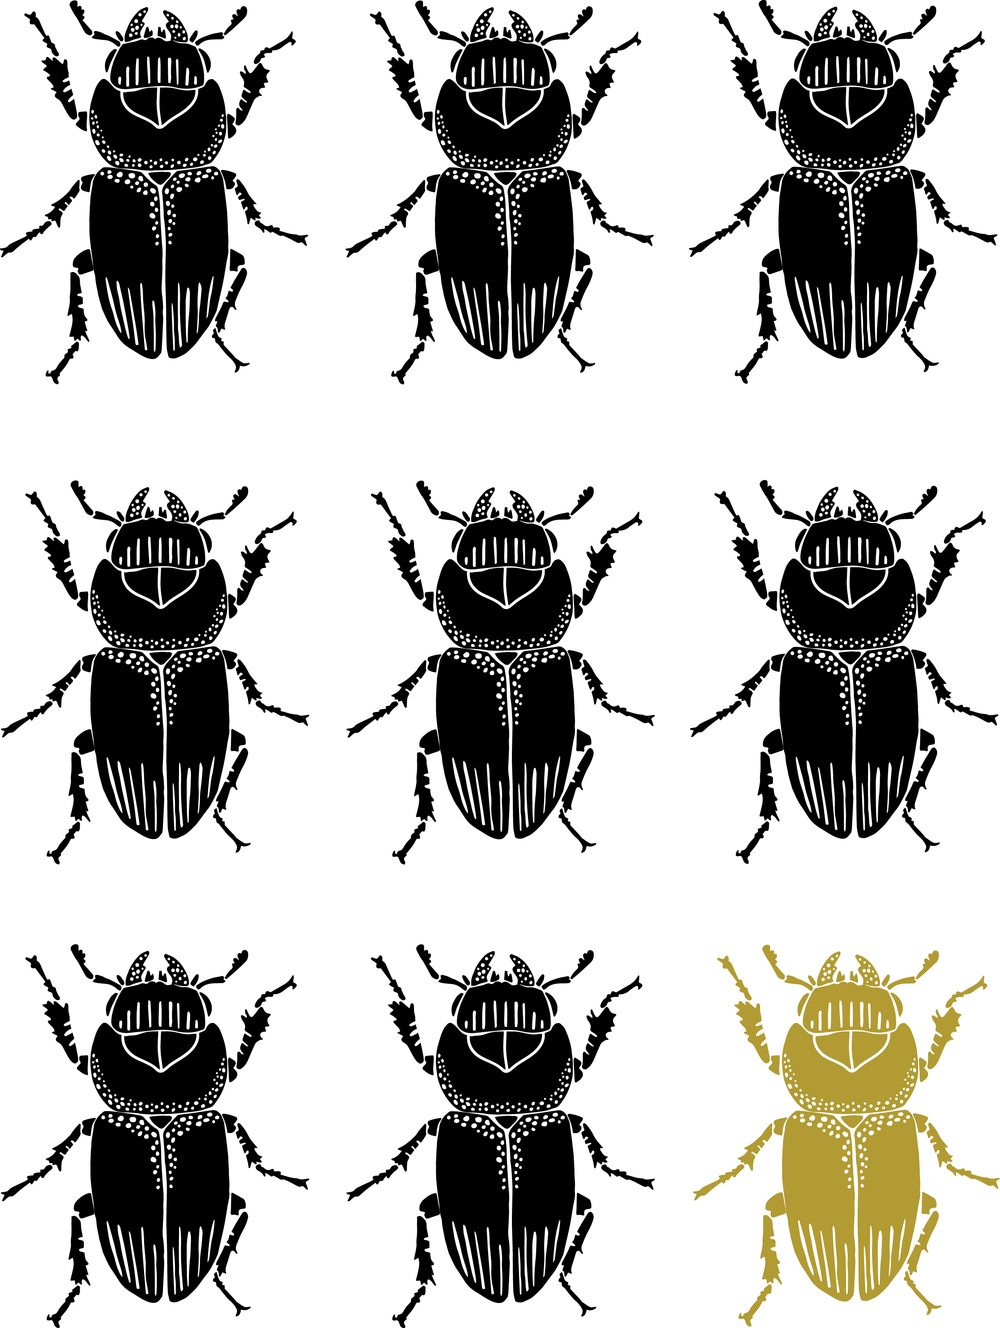 Beetle_Poster_18by24.jpg